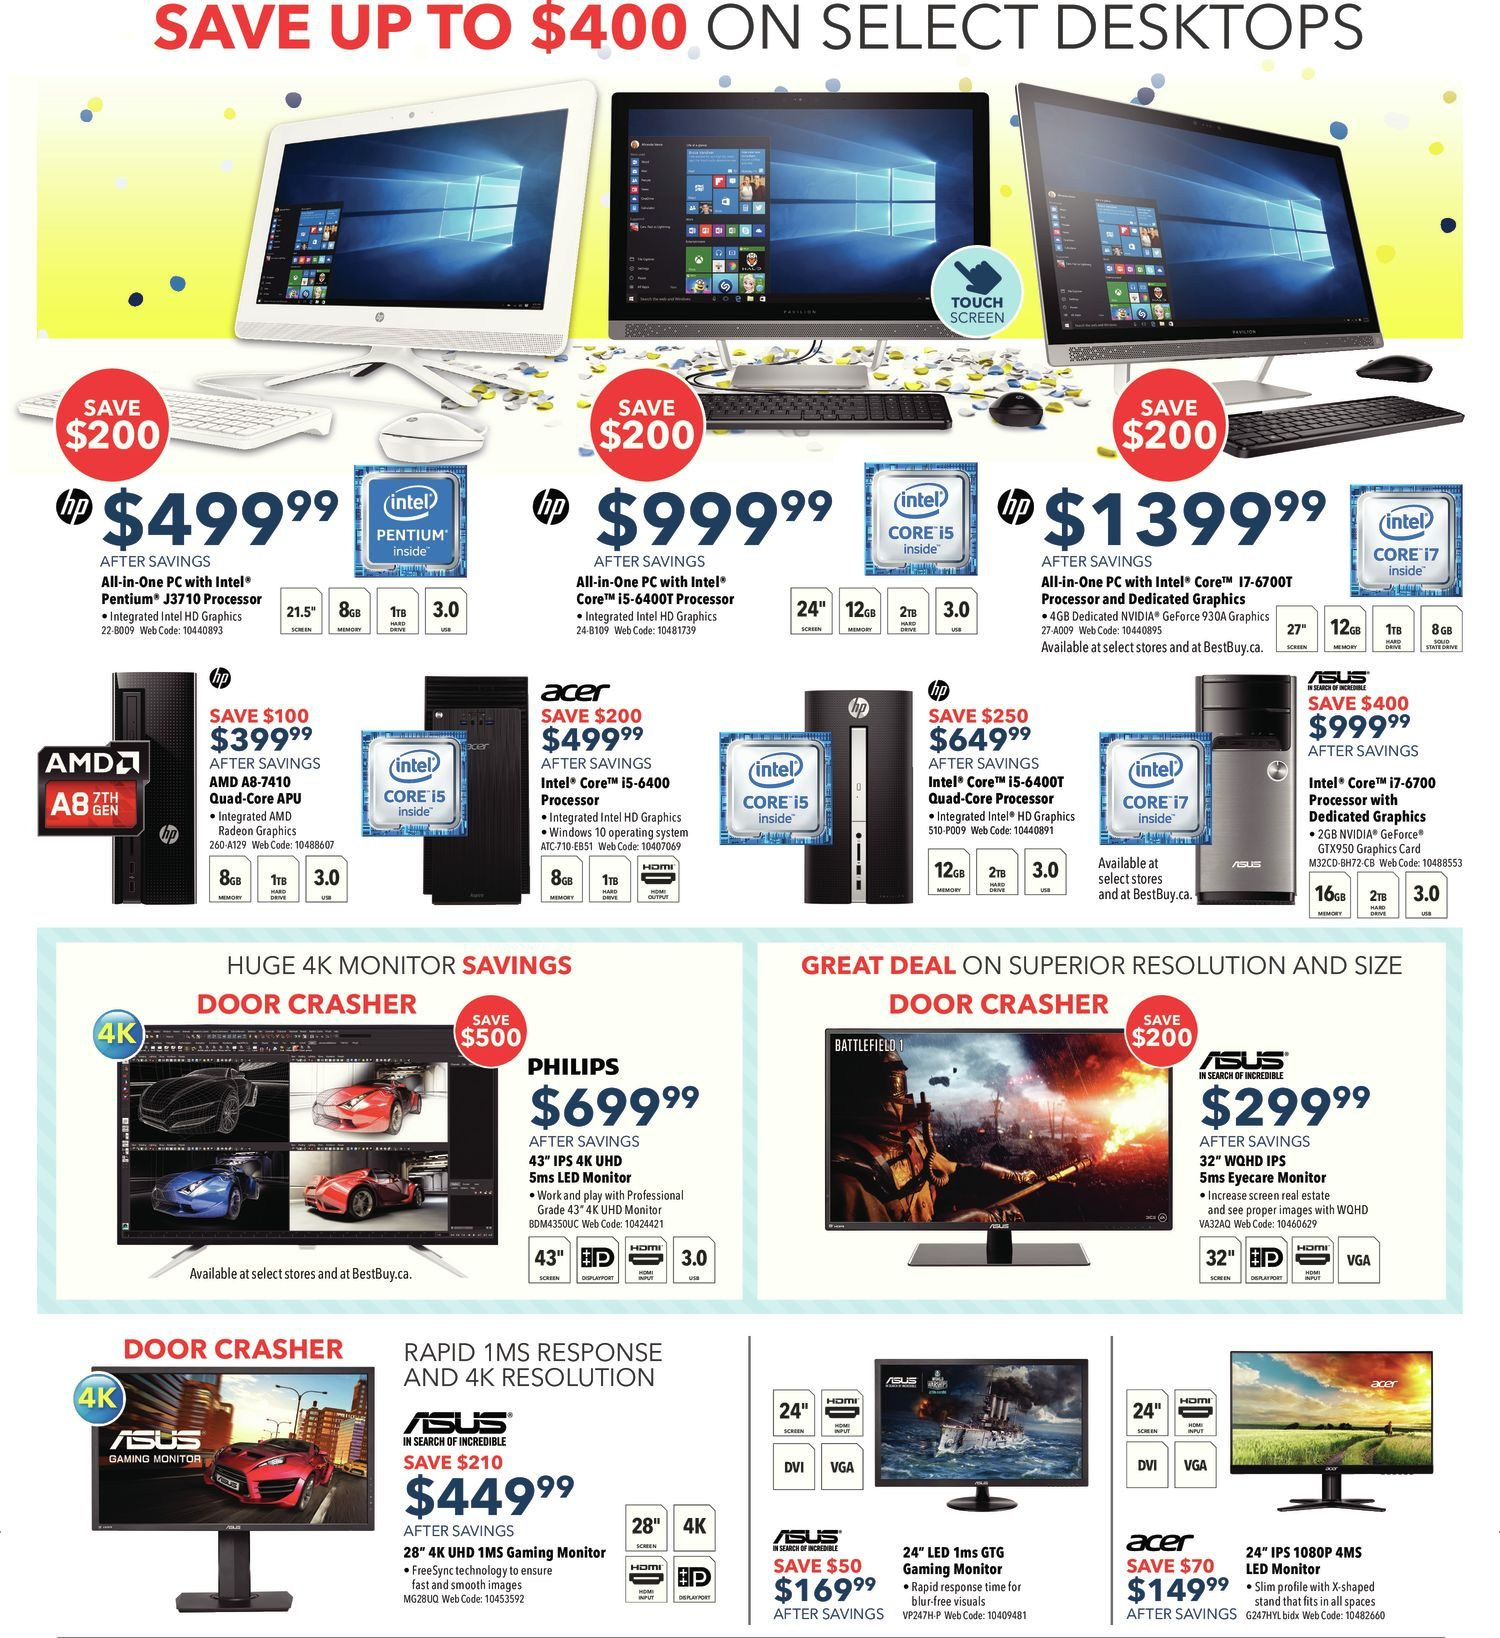 Apc back ups 400 manual ebook coupon codes gallery free ebooks and best buy weekly flyer boxing day sale dec 25 29 redflagdeals fandeluxe gallery fandeluxe Choice Image